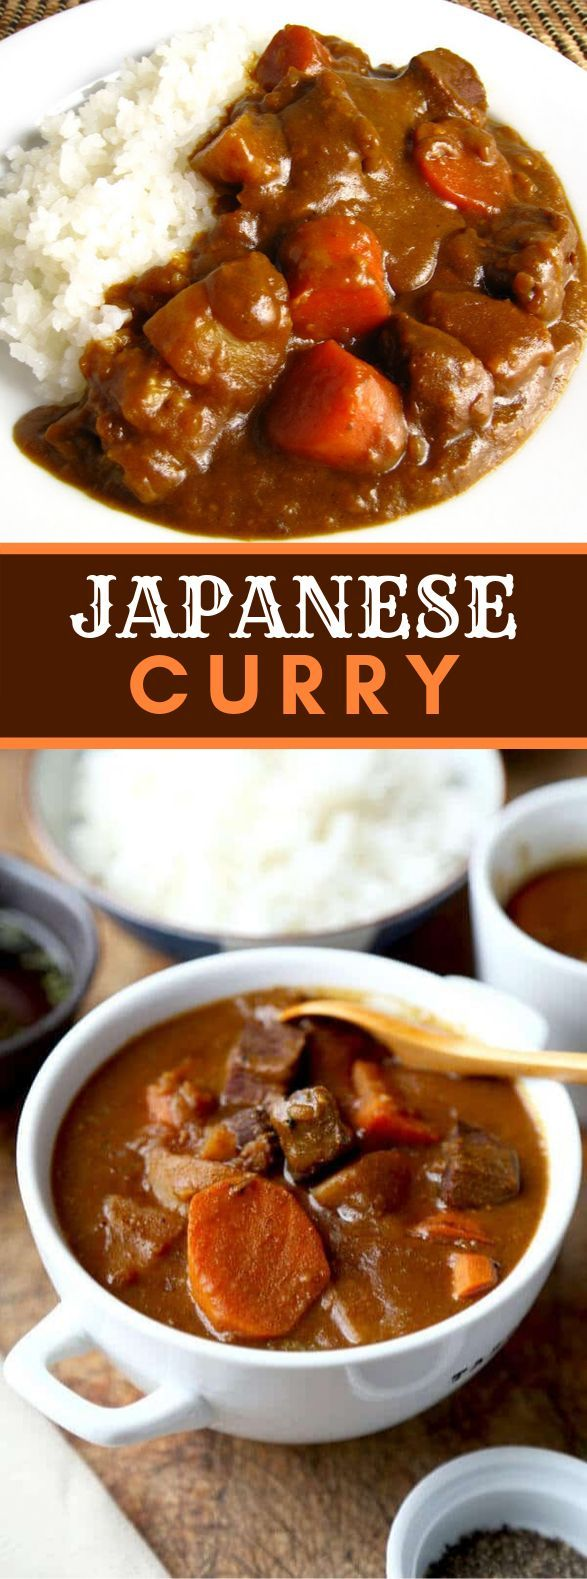 Japanese Curry Recipe Dinner Lunch In 2020 Curry Recipes Beef Curry Recipe Japanese Curry